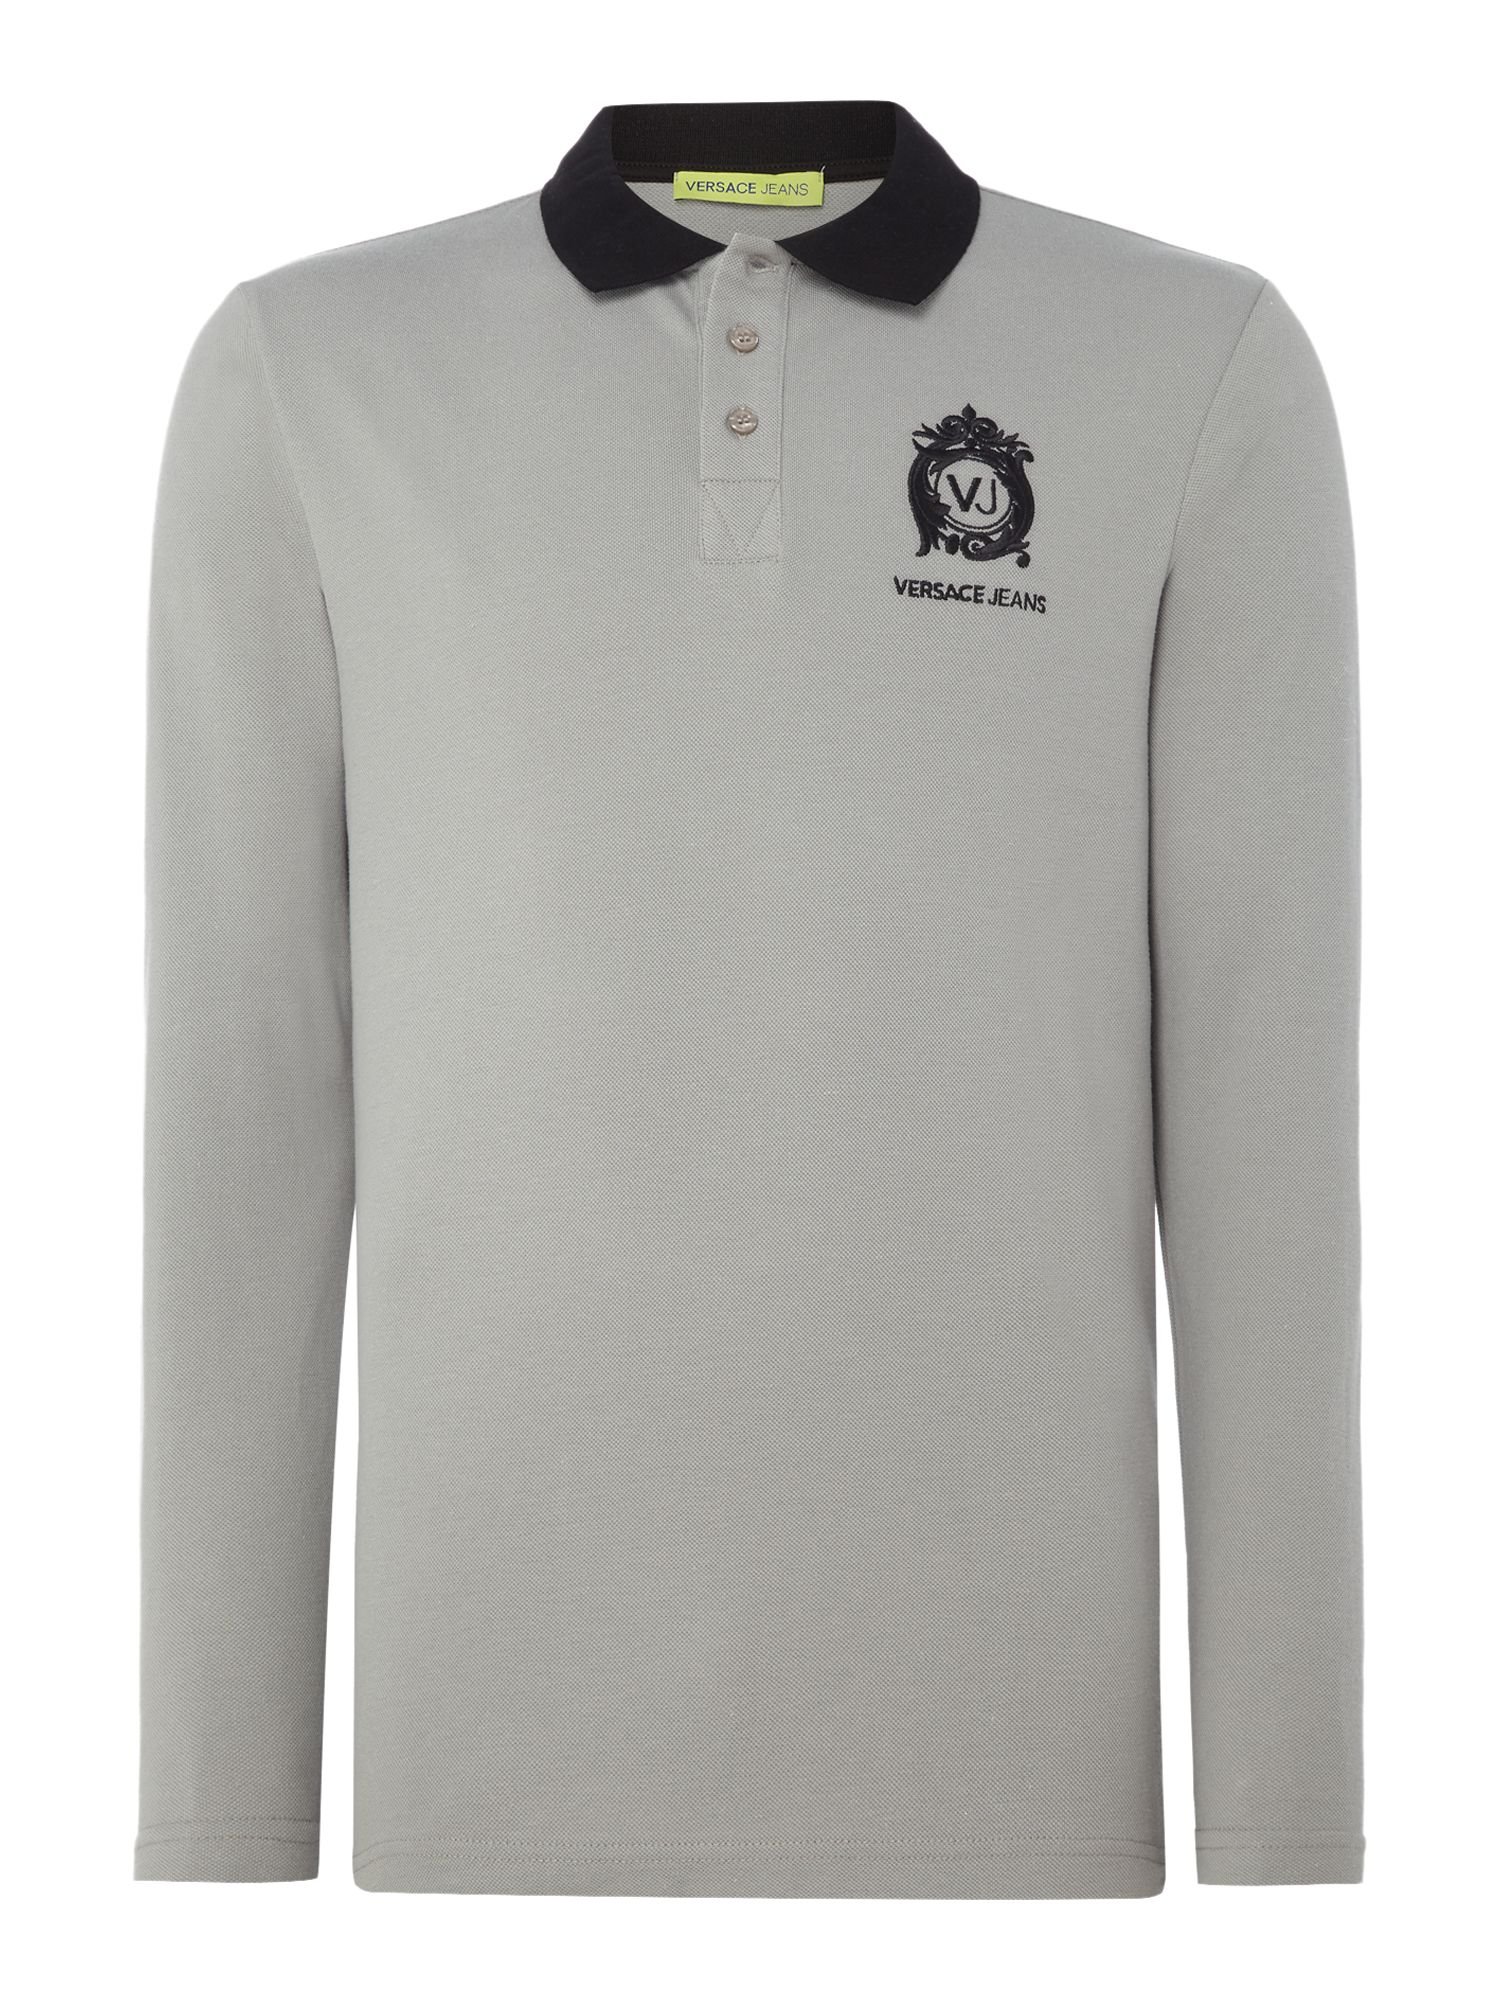 Versace Jeans Men's Versace Jeans Regular fit embroidered logo long sleeve polo, Grey